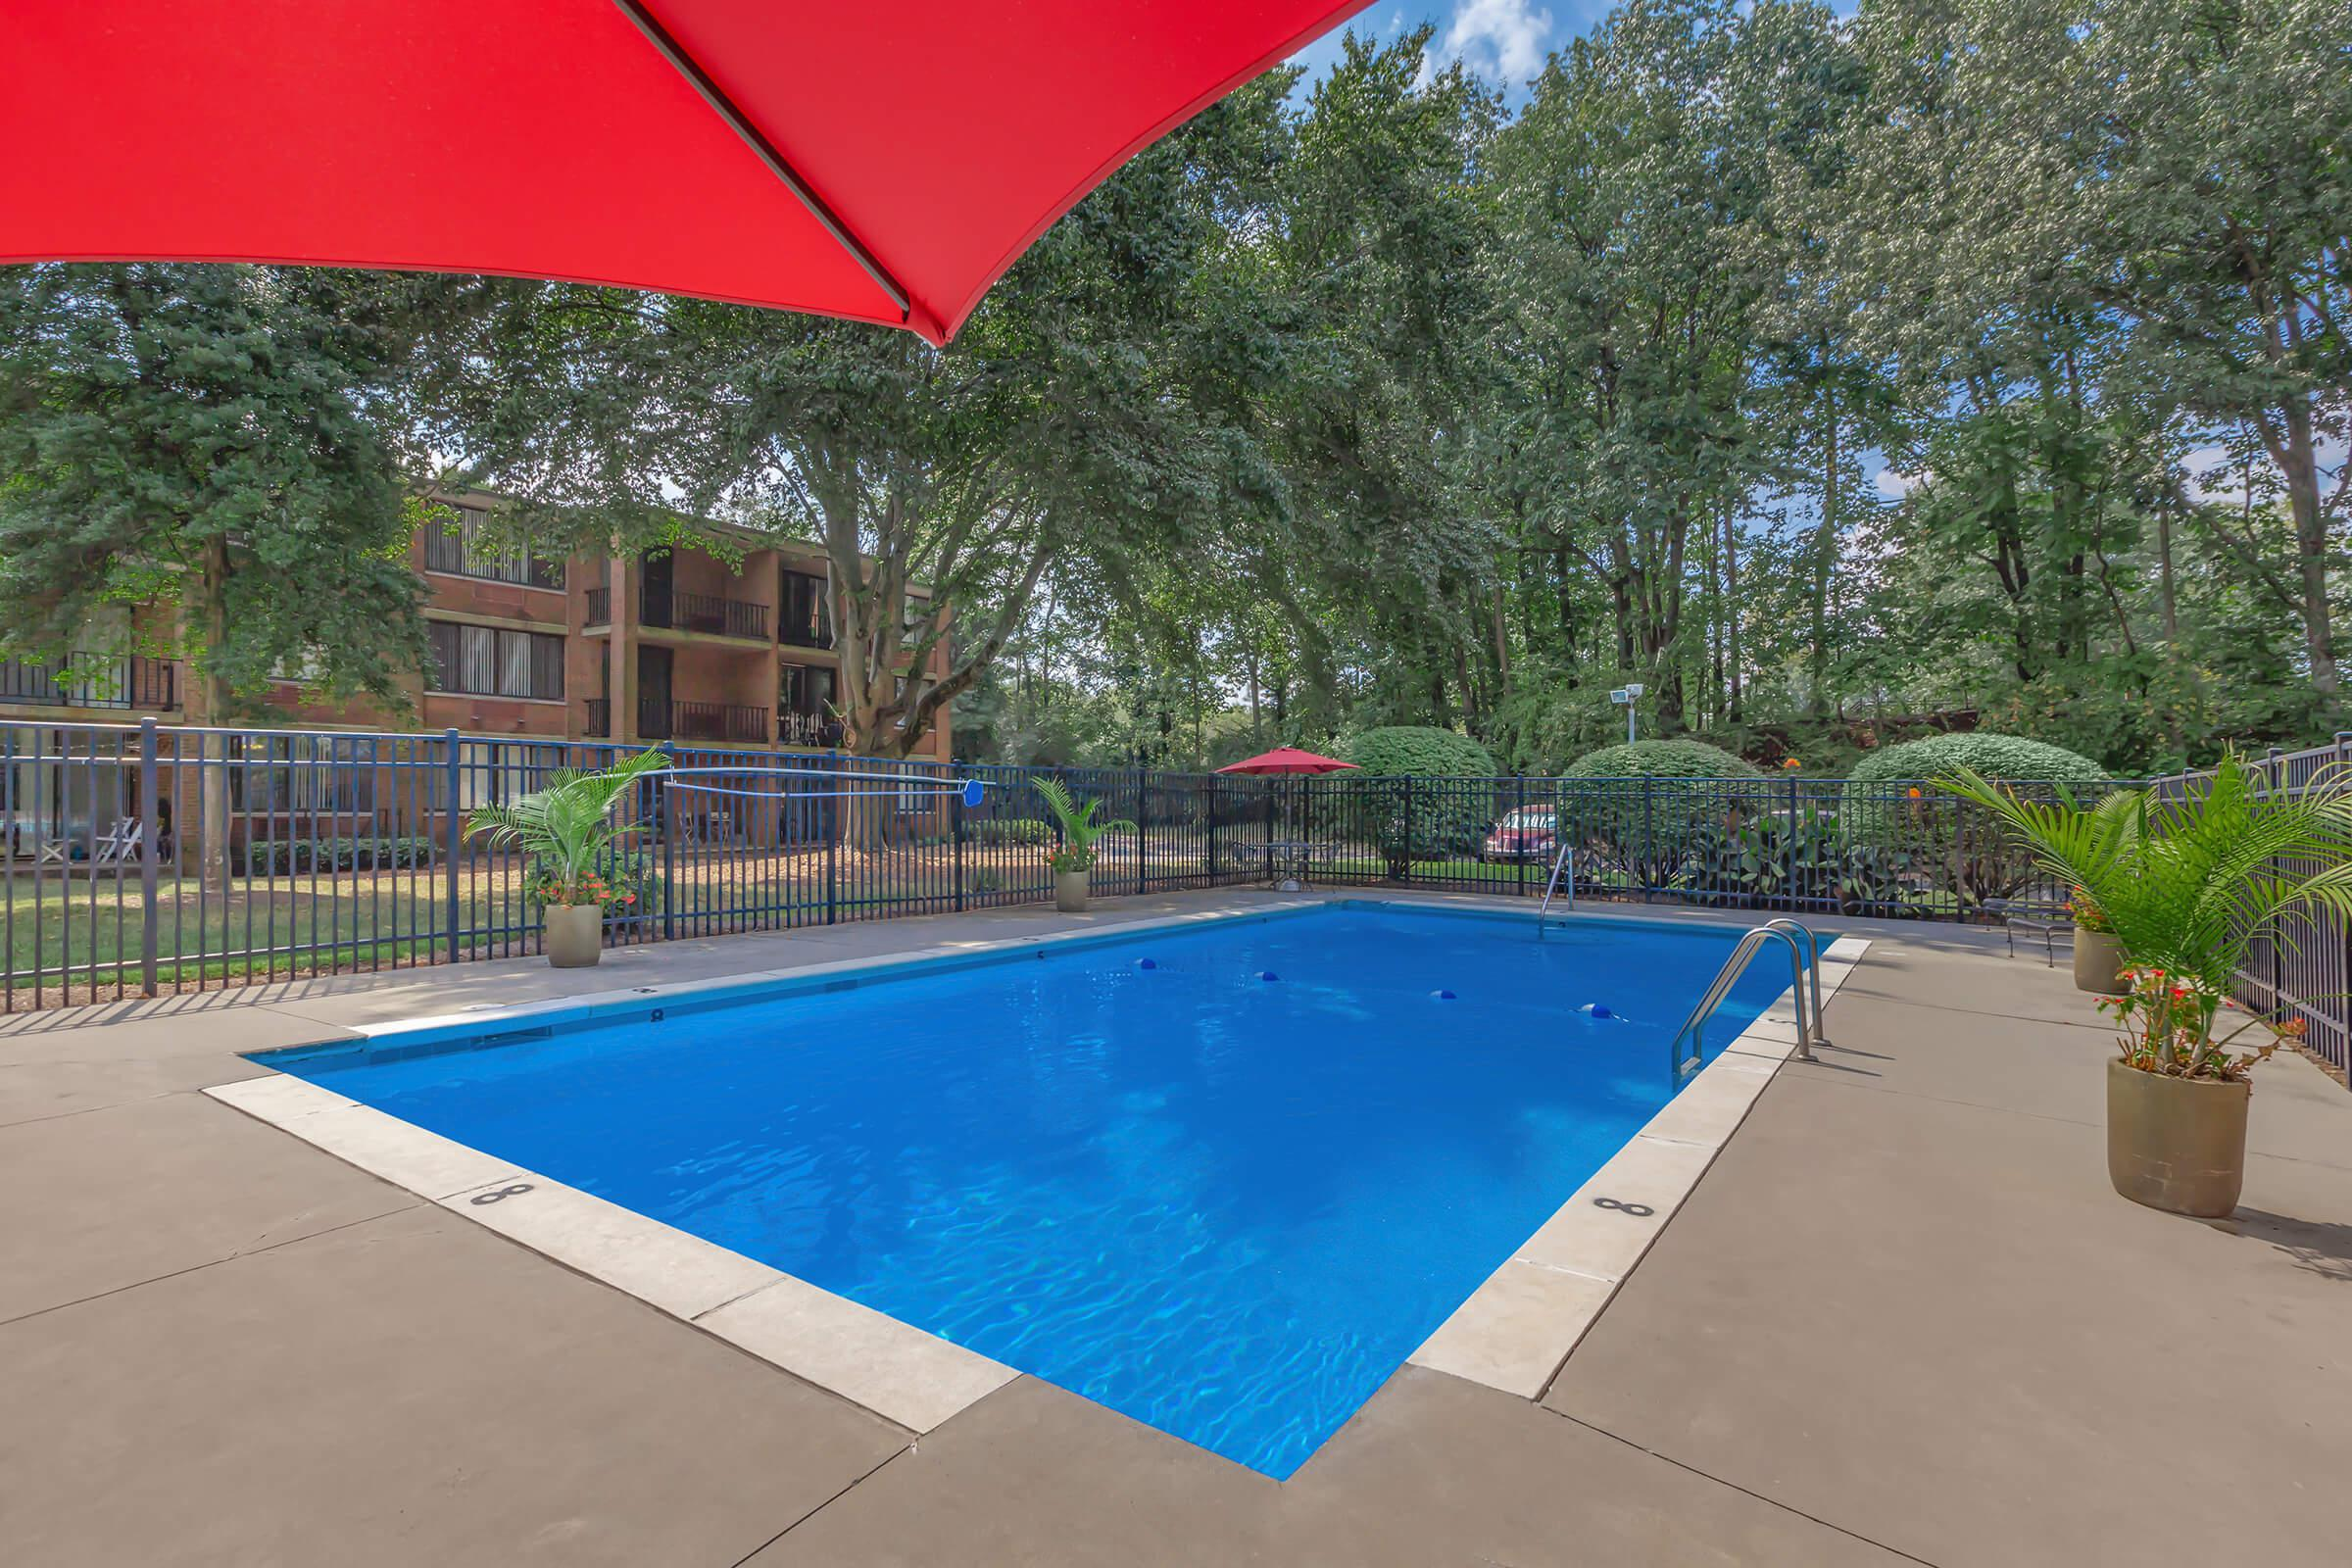 THE POOL AT CRESTRIDGE APARTMENTS IN KNOXVILLE